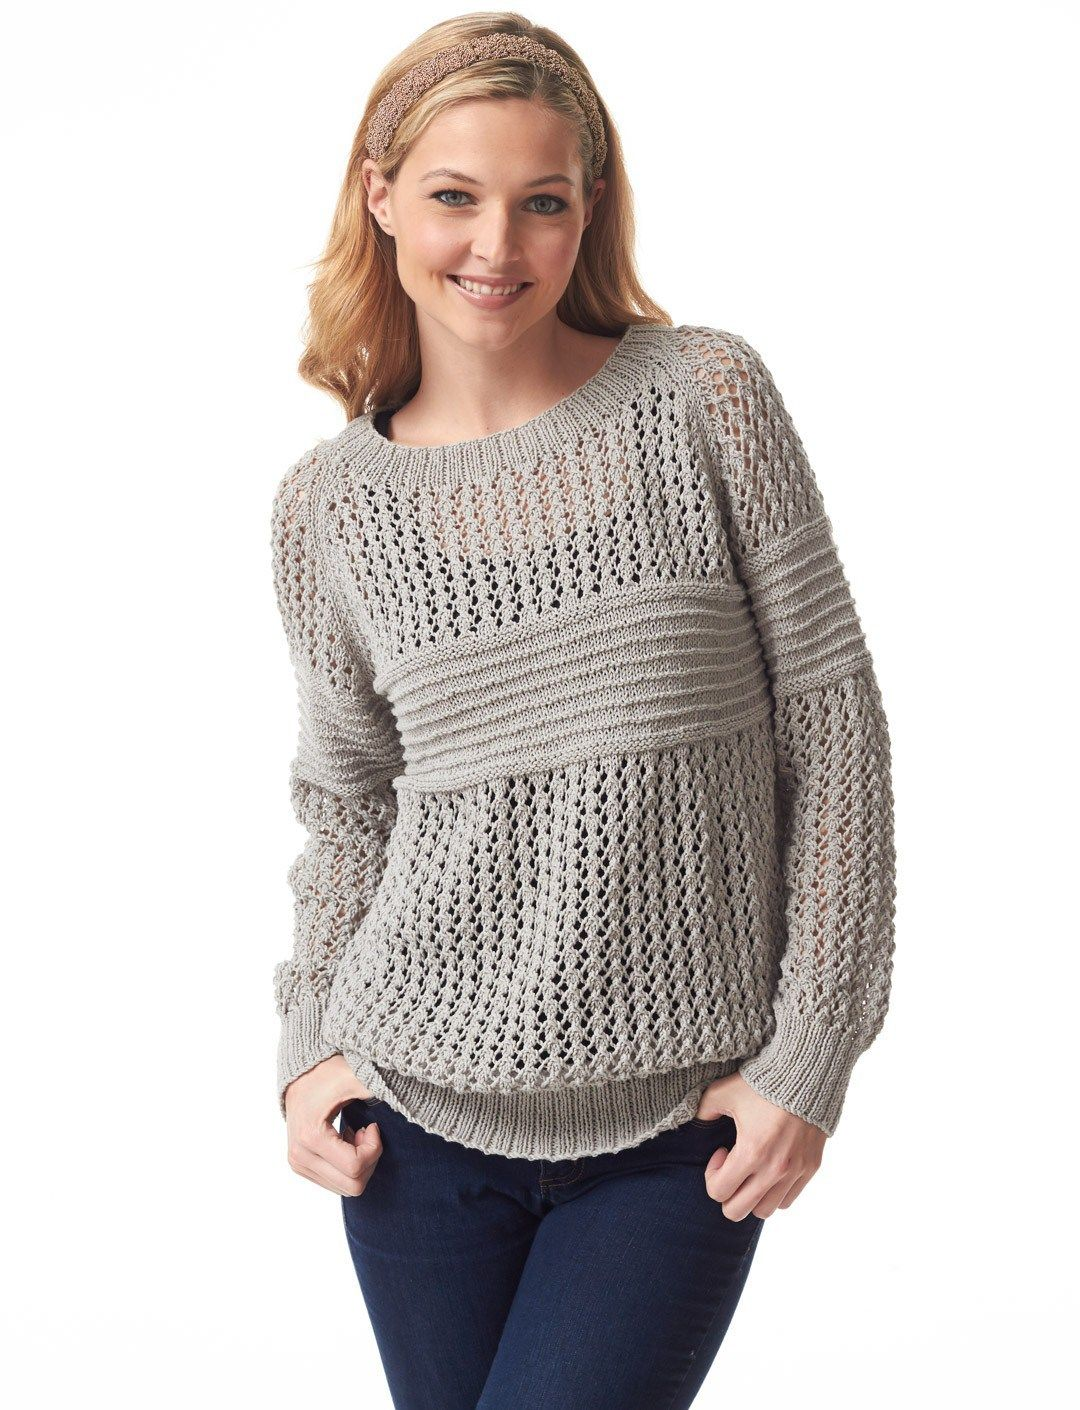 Lace pullover free knitting patterns knitting patterns and lace pullover free knitting patterns bankloansurffo Image collections